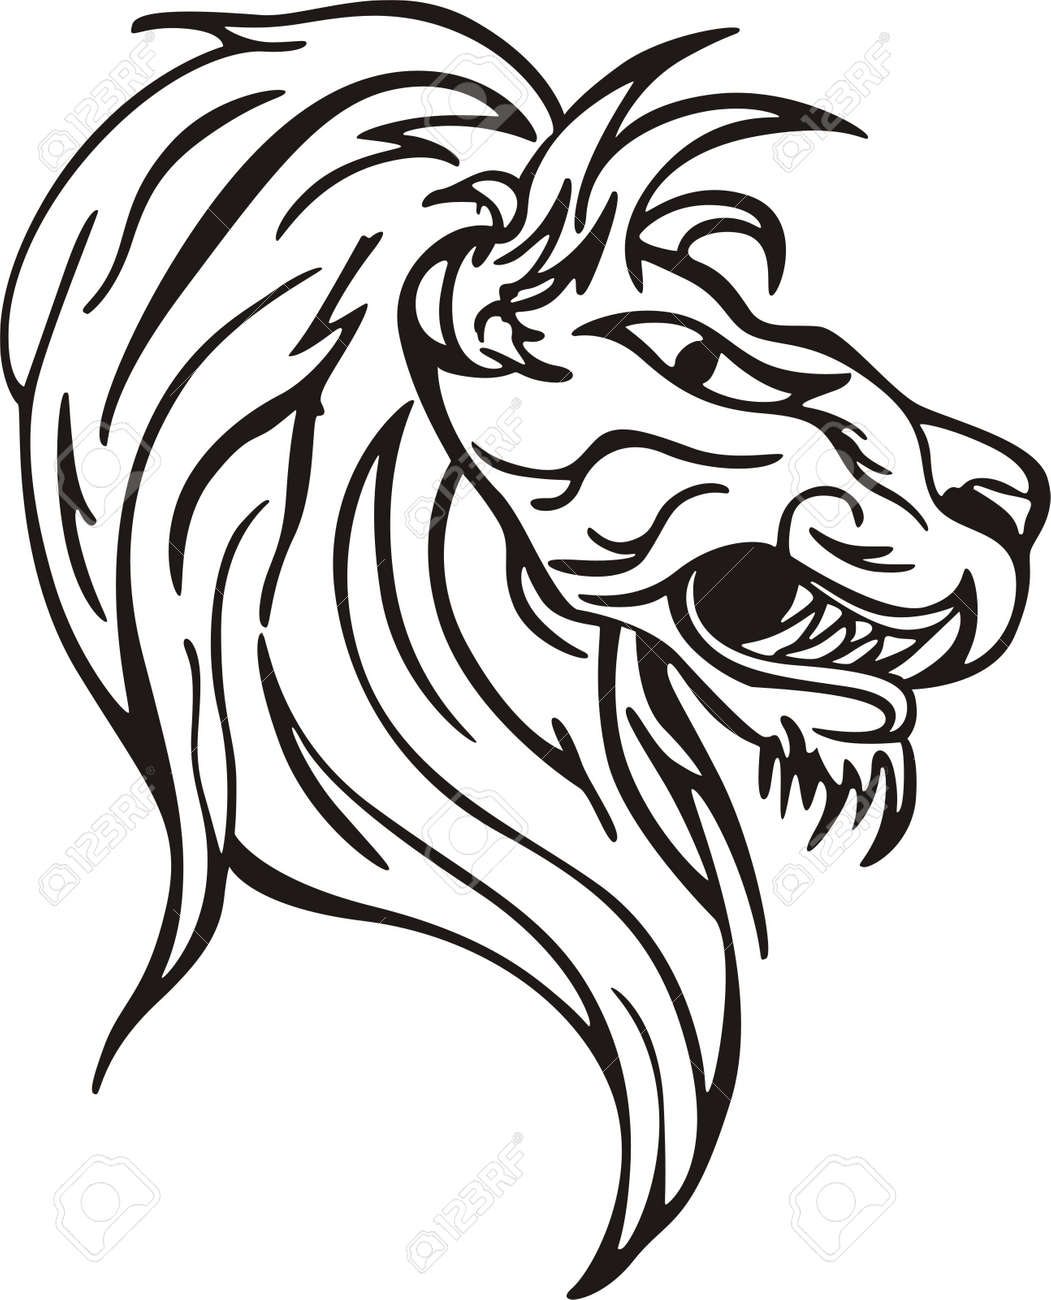 Simple Lion Head Design Vinyl Ready Eps Illustration Black